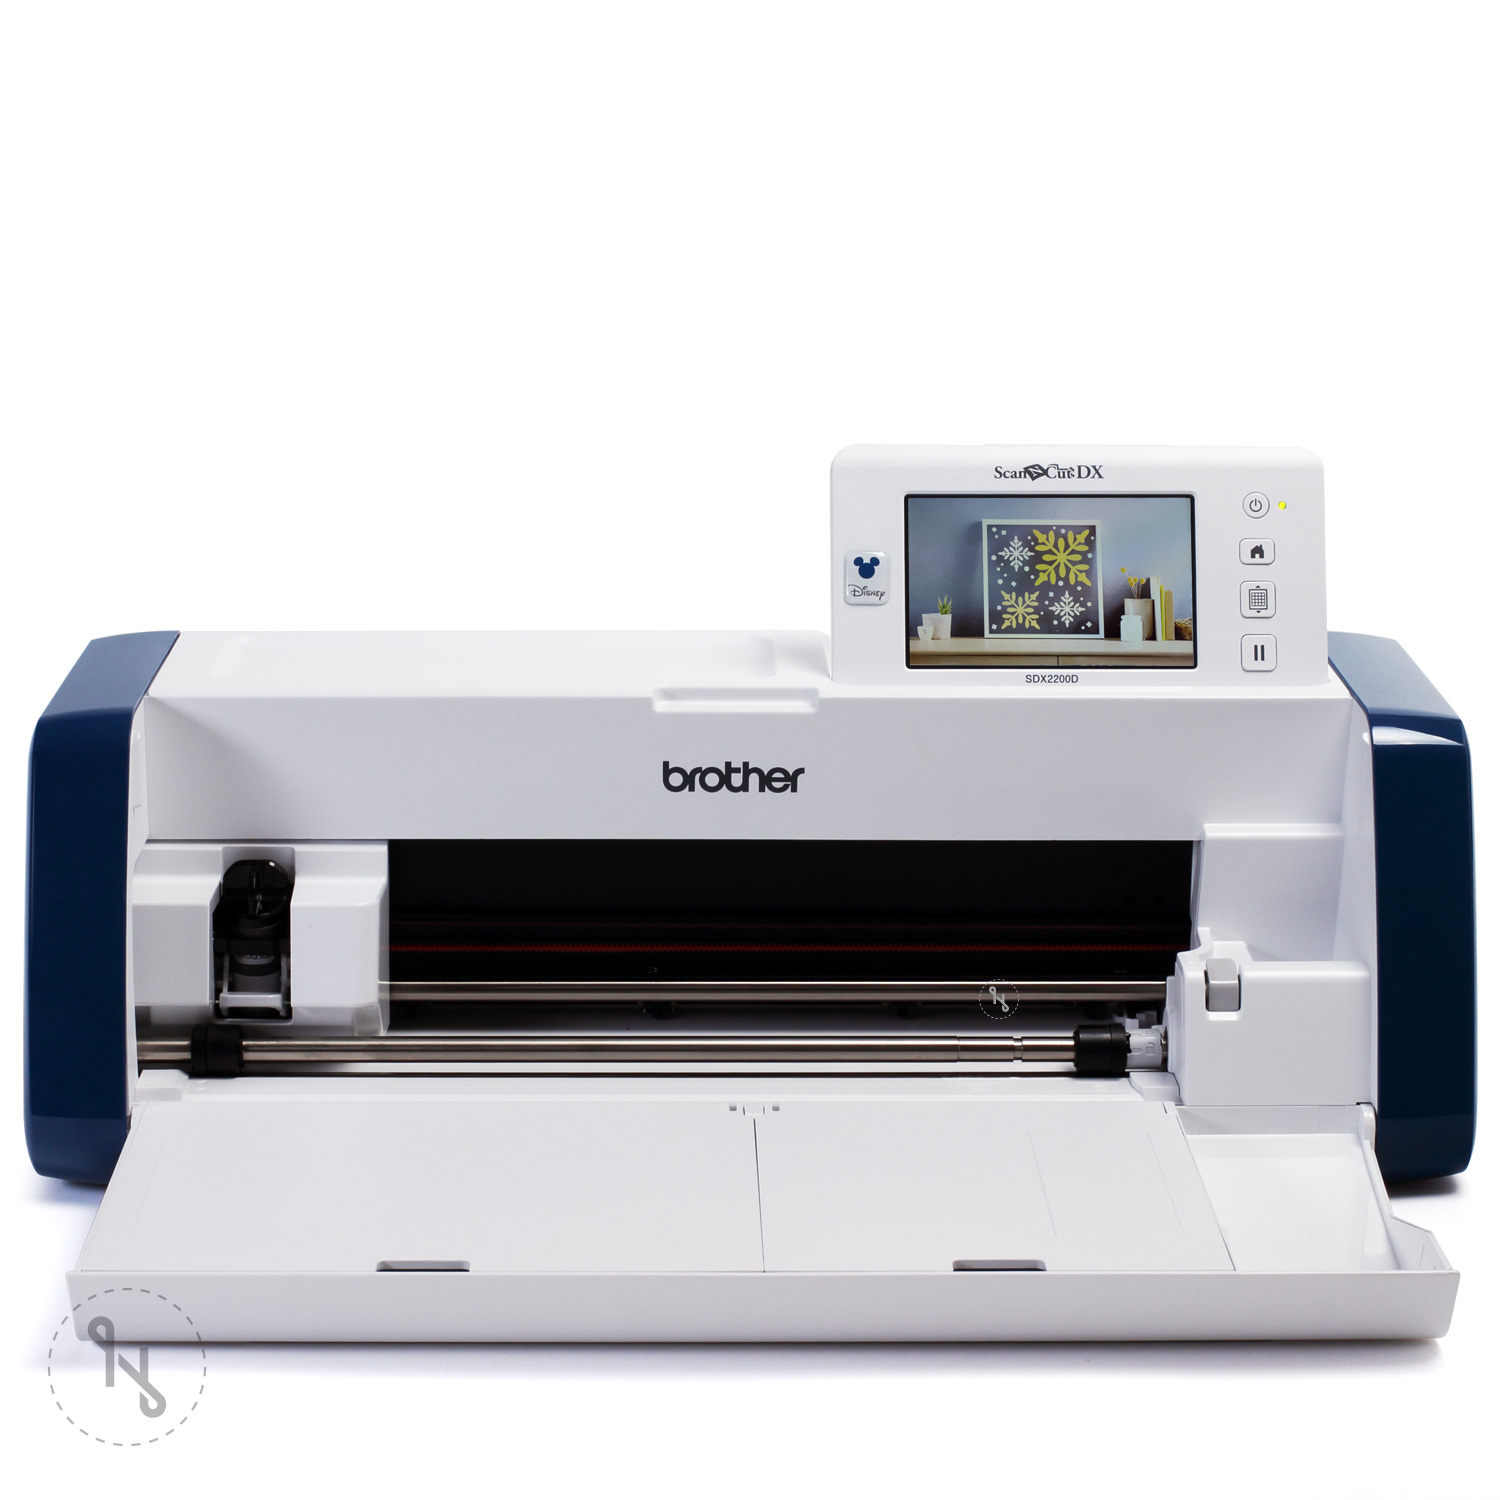 BROTHER Schneideplotter ScanNCut SDX2200D